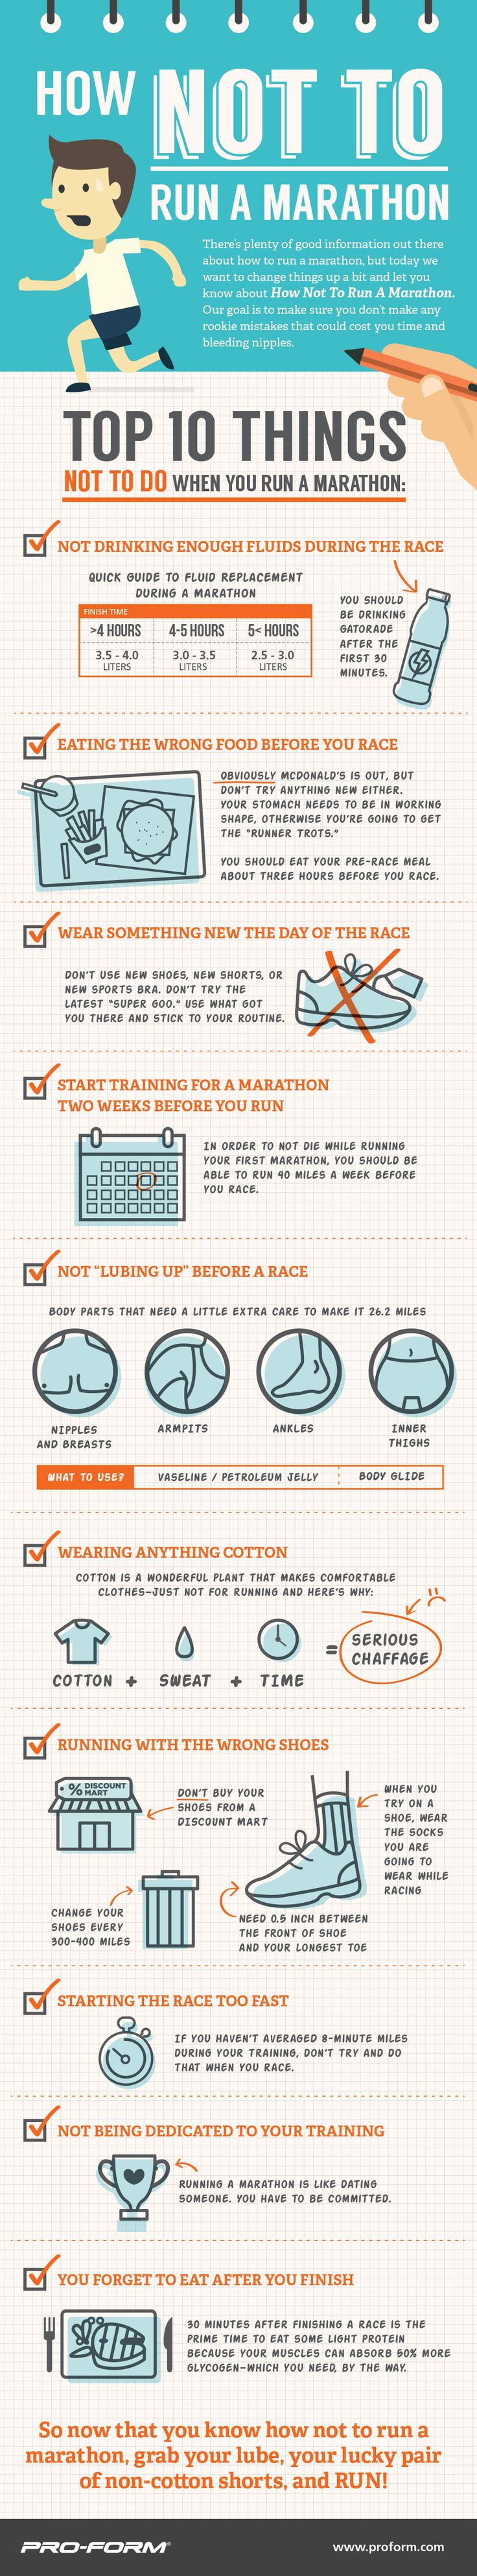 Get healthy, they said. Running will make you fit, they said. Run a marathon, they said. It will be fun, they said! But how do you train for a marathon correctly? I have no idea- but here's our Top 10 List: of How NOT to Run a Marathon - My No-Guilt Life | My No-Guilt Life